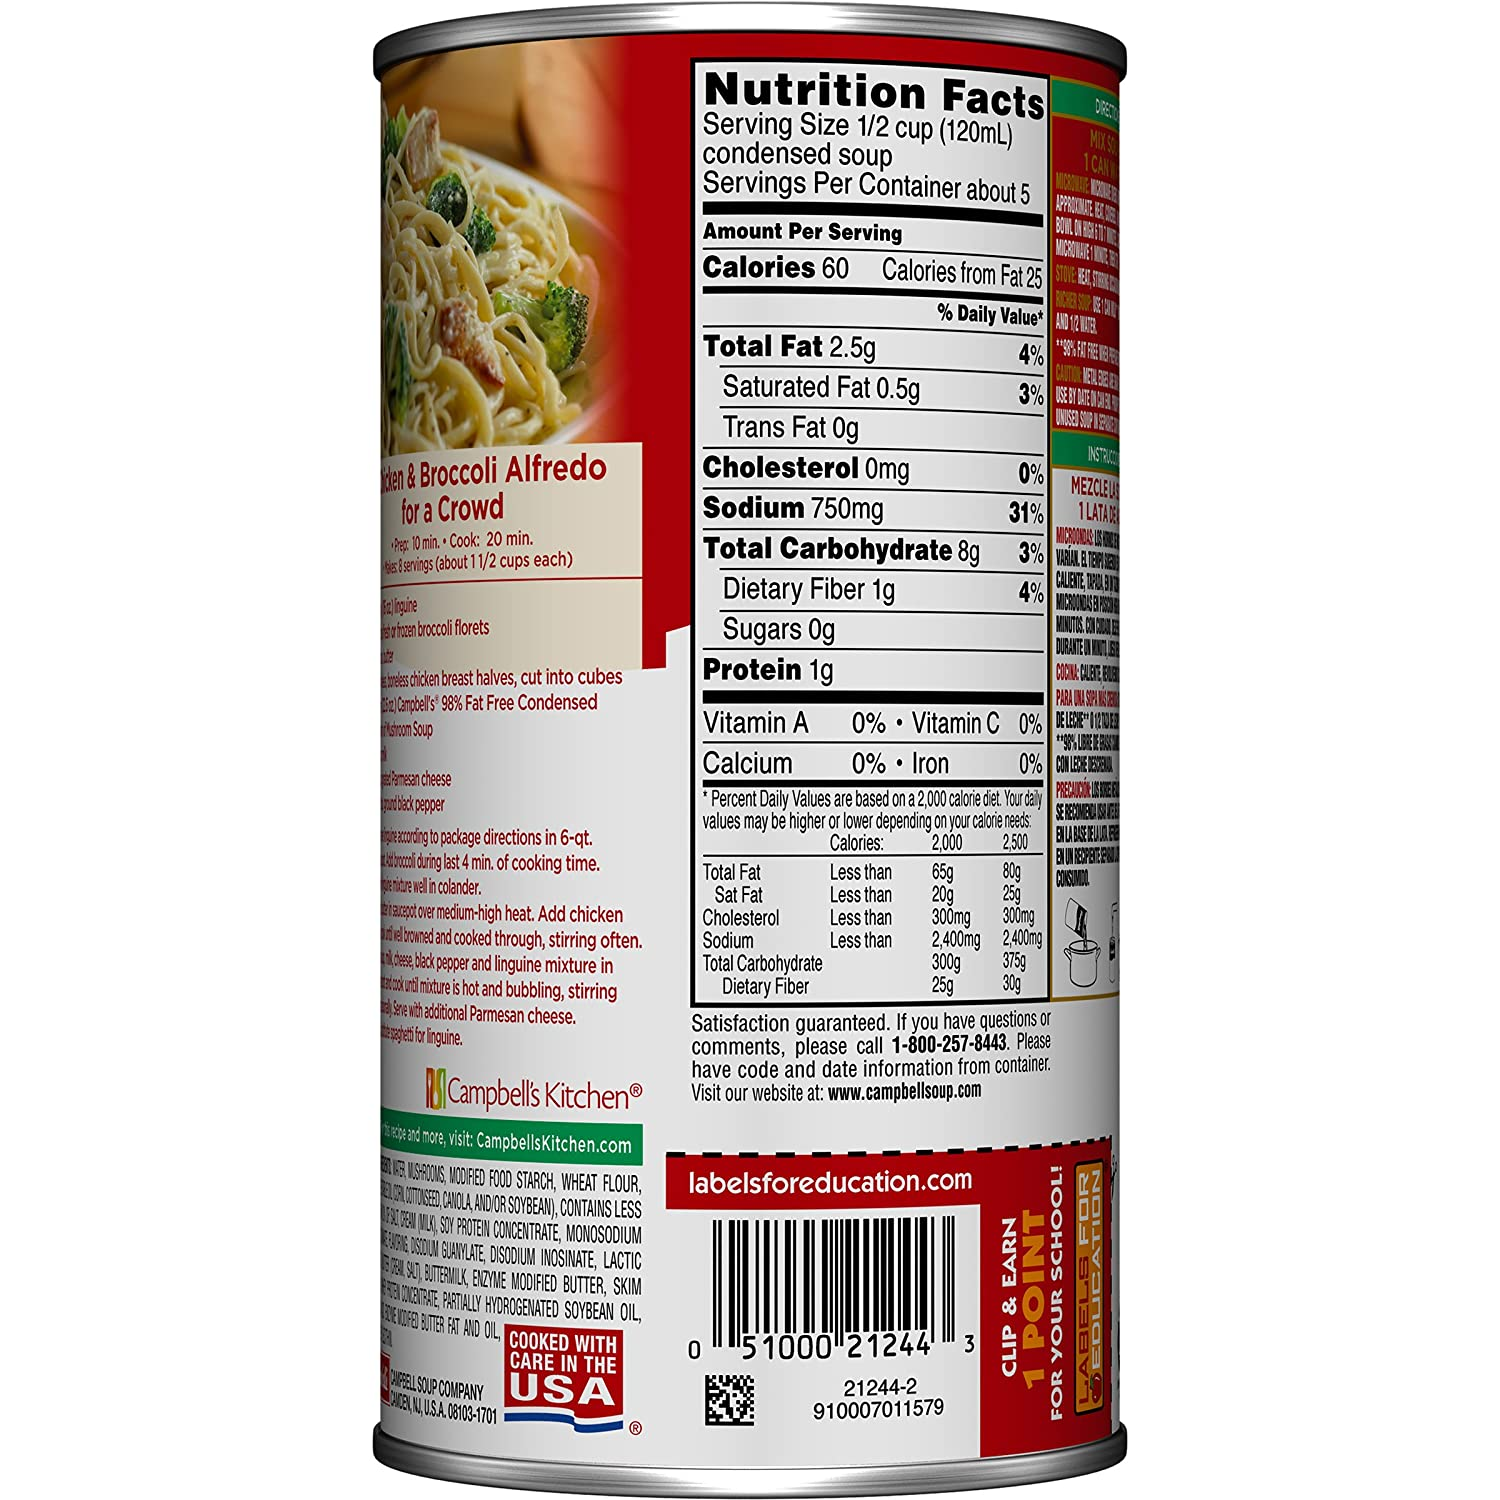 Amazon.com: Campbellu0027s 98% Fat Free Condensed Soup, Cream Of Mushroom,  Family Size, 22.6 Ounce (Packaging May Vary): Prime Pantry